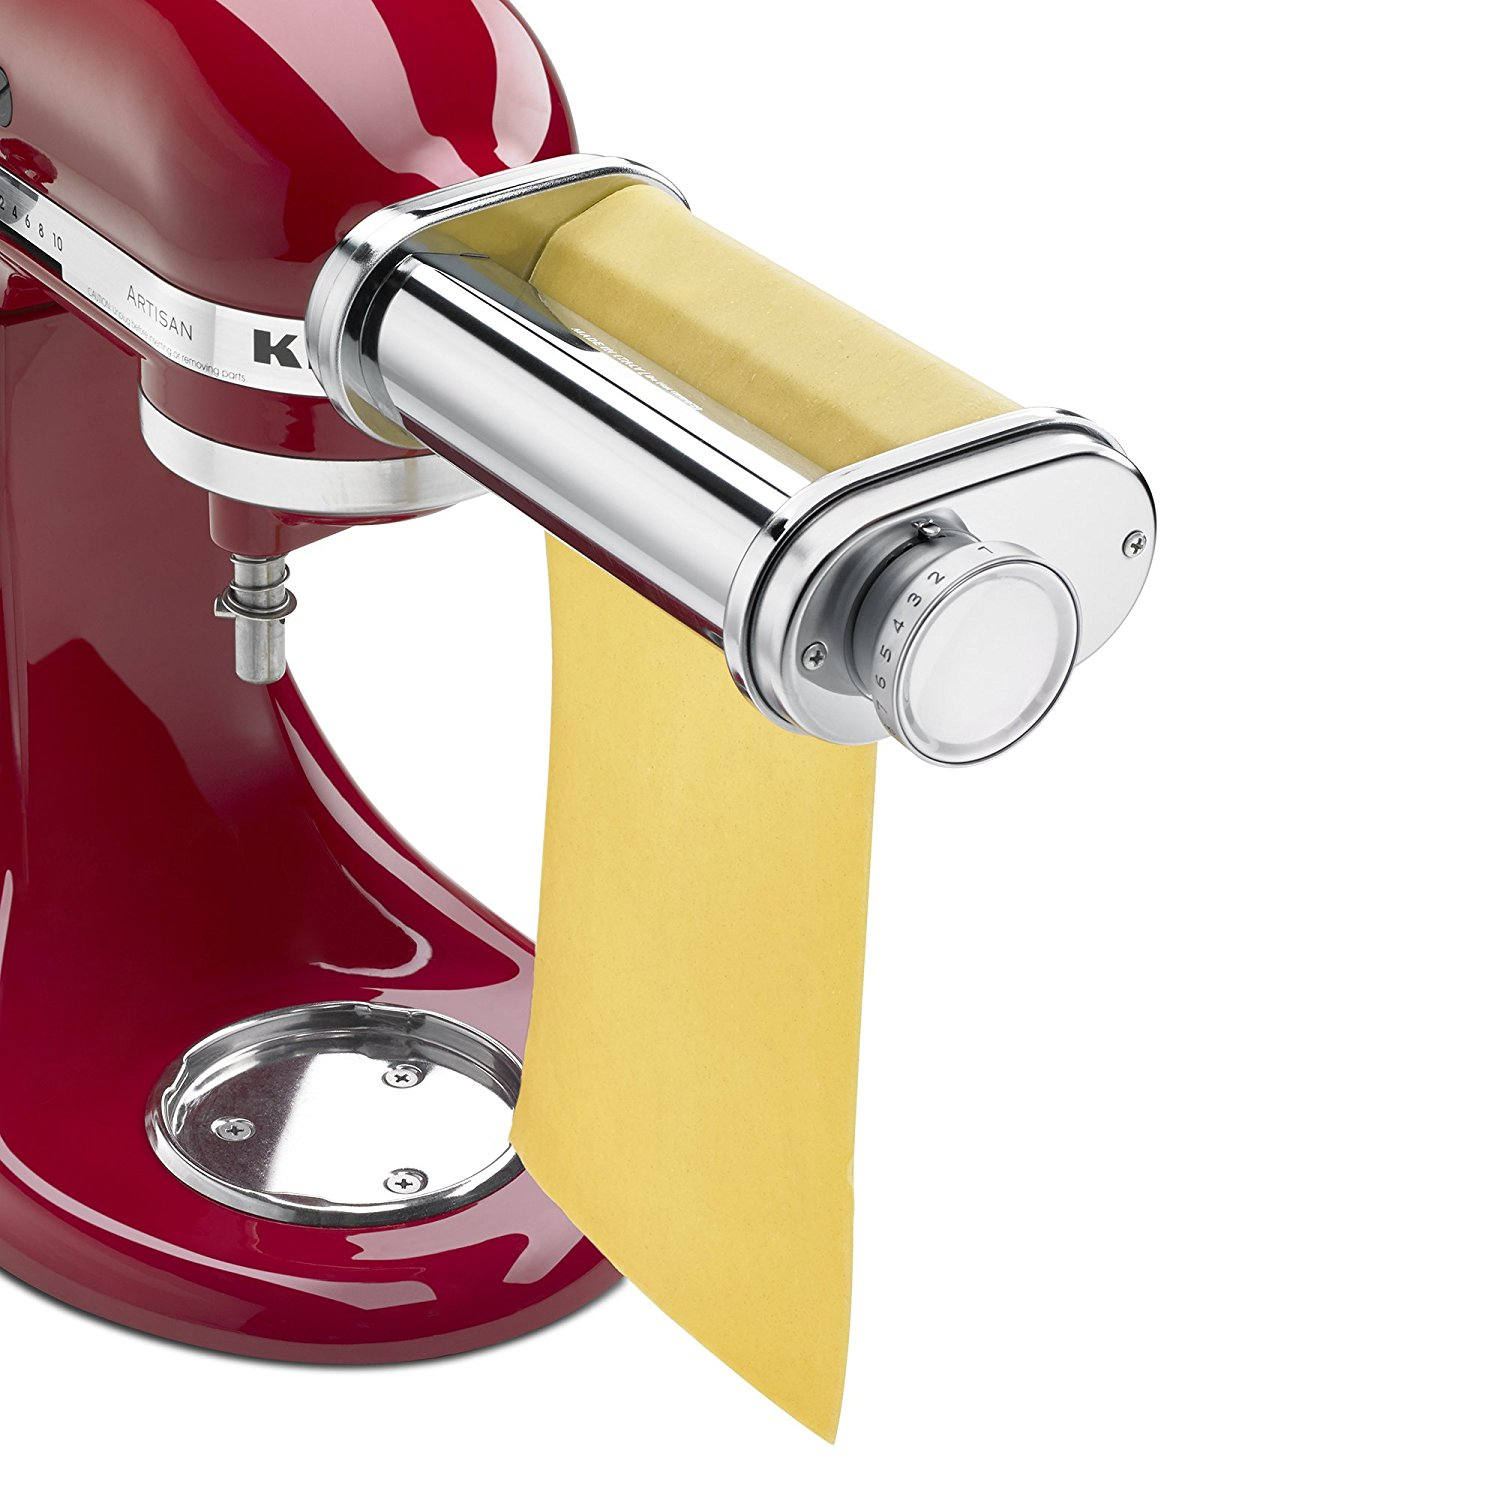 Kitchenaid Attachments 5 Best Kitchenaid Mixer Attachments You Need In Your Life Now